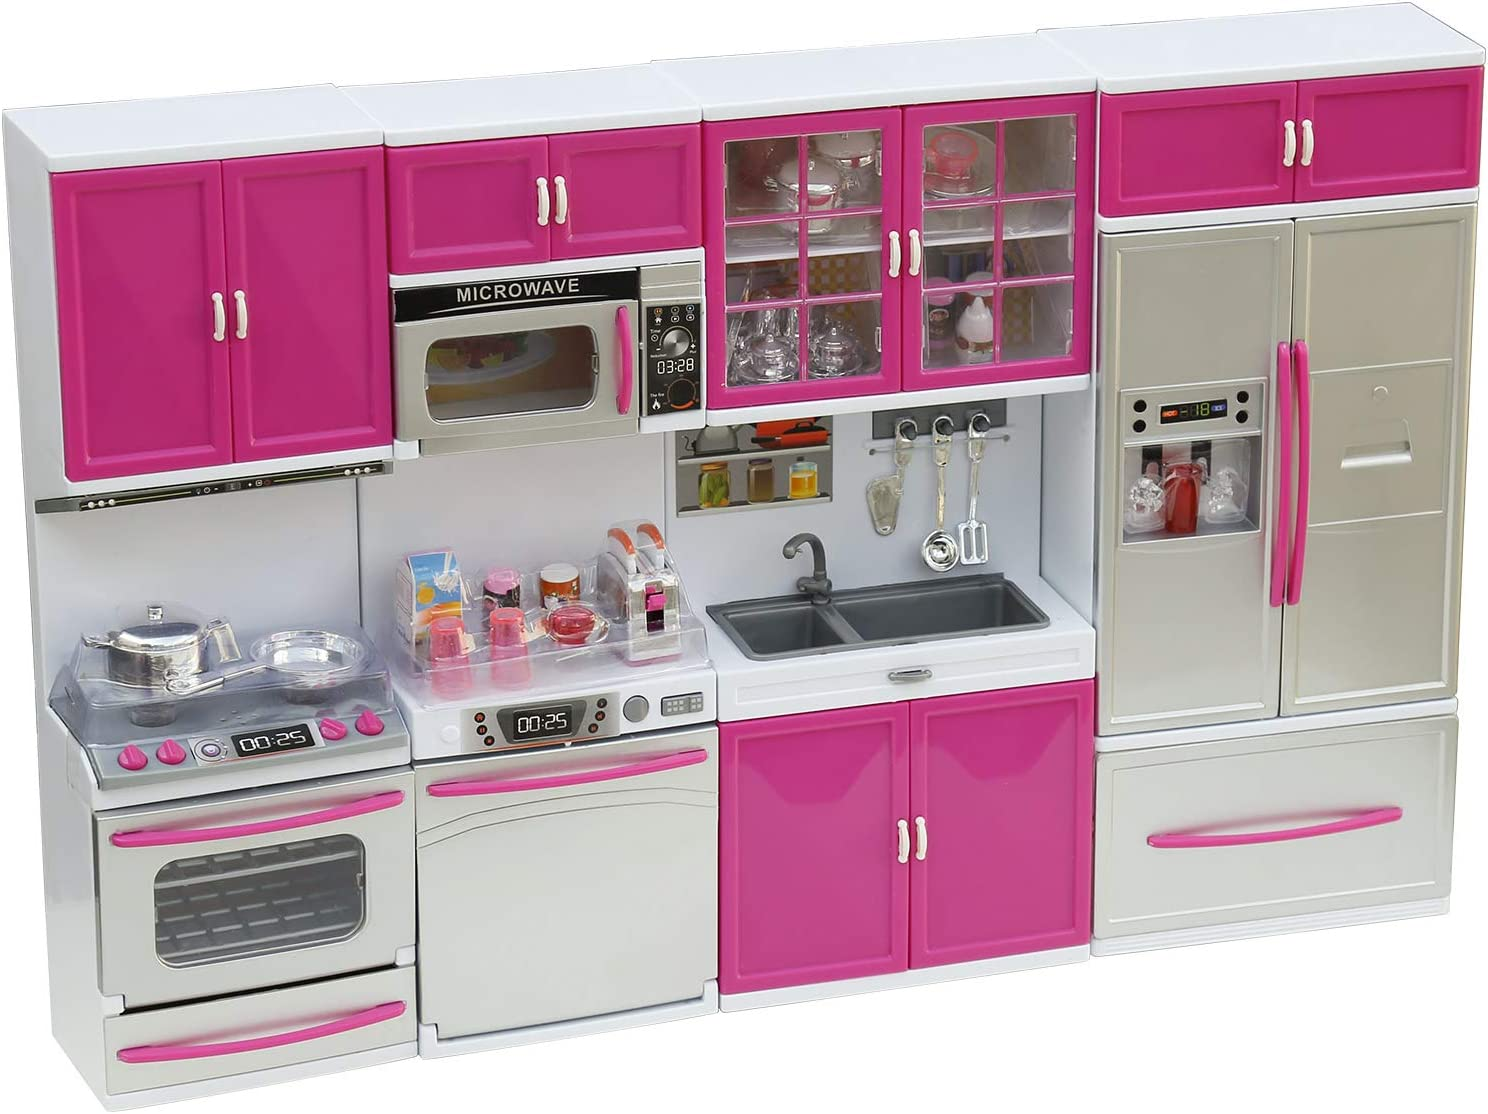 AZToys Modern Kitchen Playset for Kids - 4-in-1 Playset with 39pcs Foods & Accessories, Battery Operated Appliances with Realistic Lights & Sounds, Pretend Play Toy, Great for 12